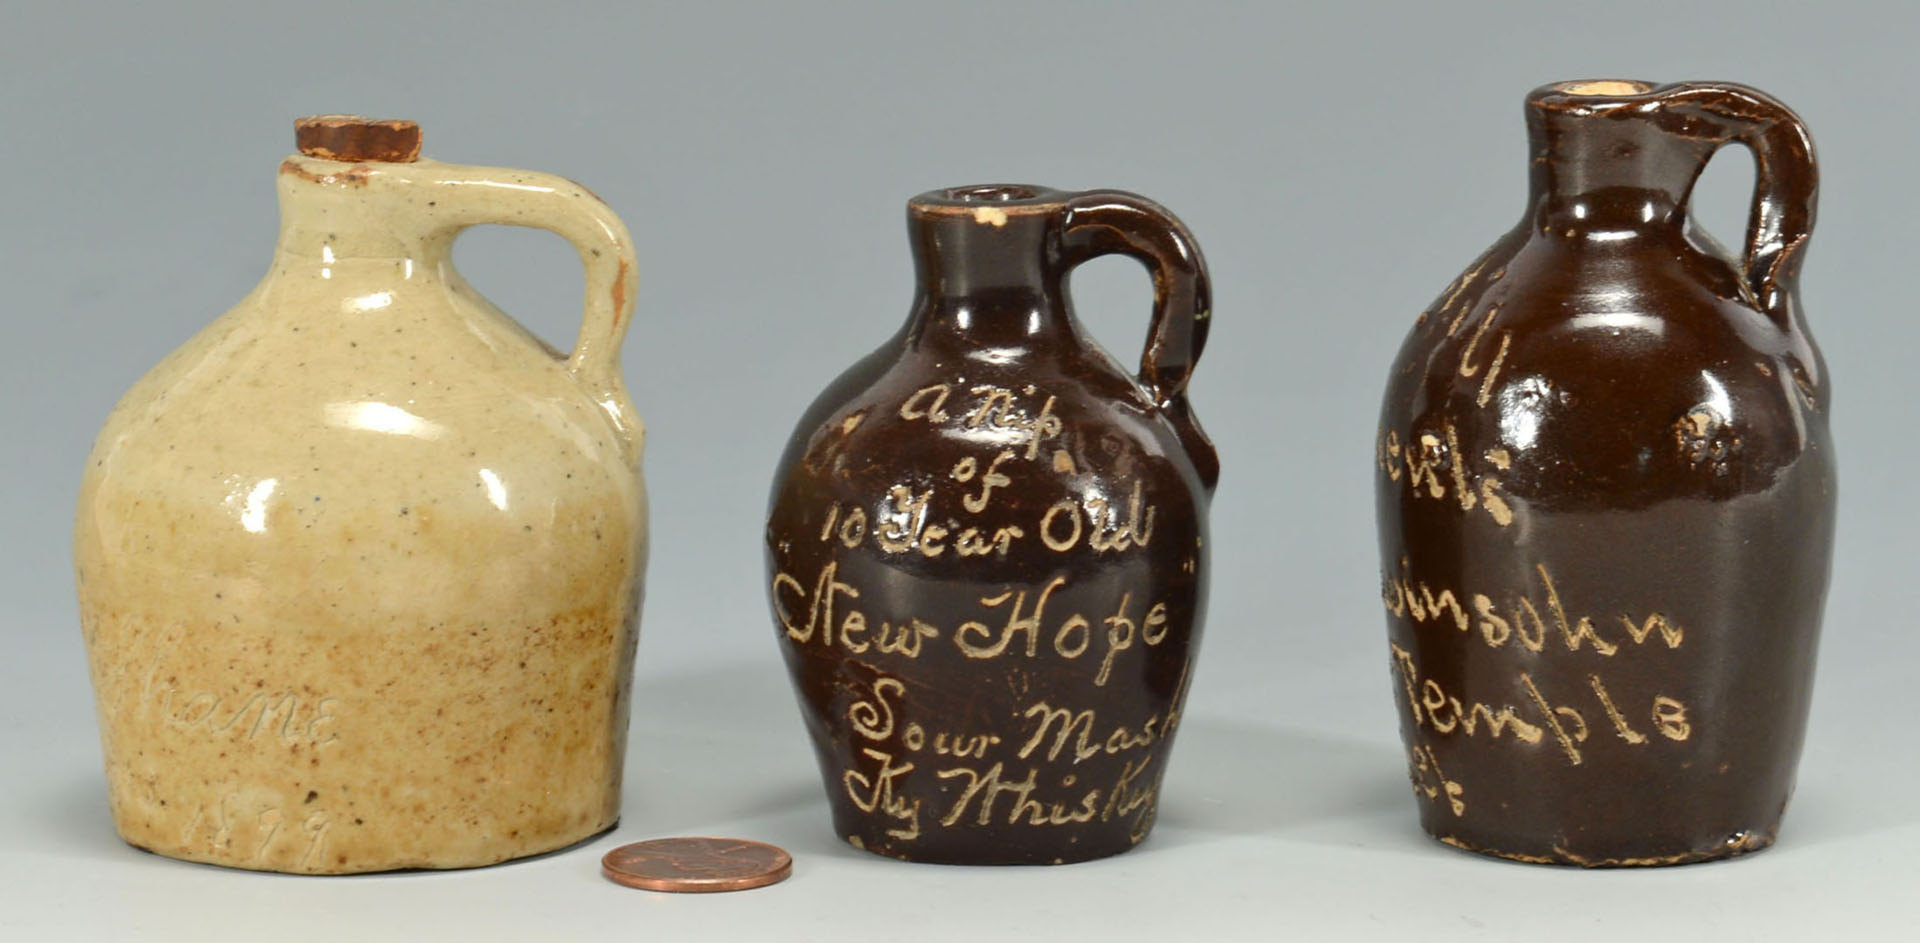 Lot 552: 3 Miniature Jugs, Incised Script, One KY Whiskey